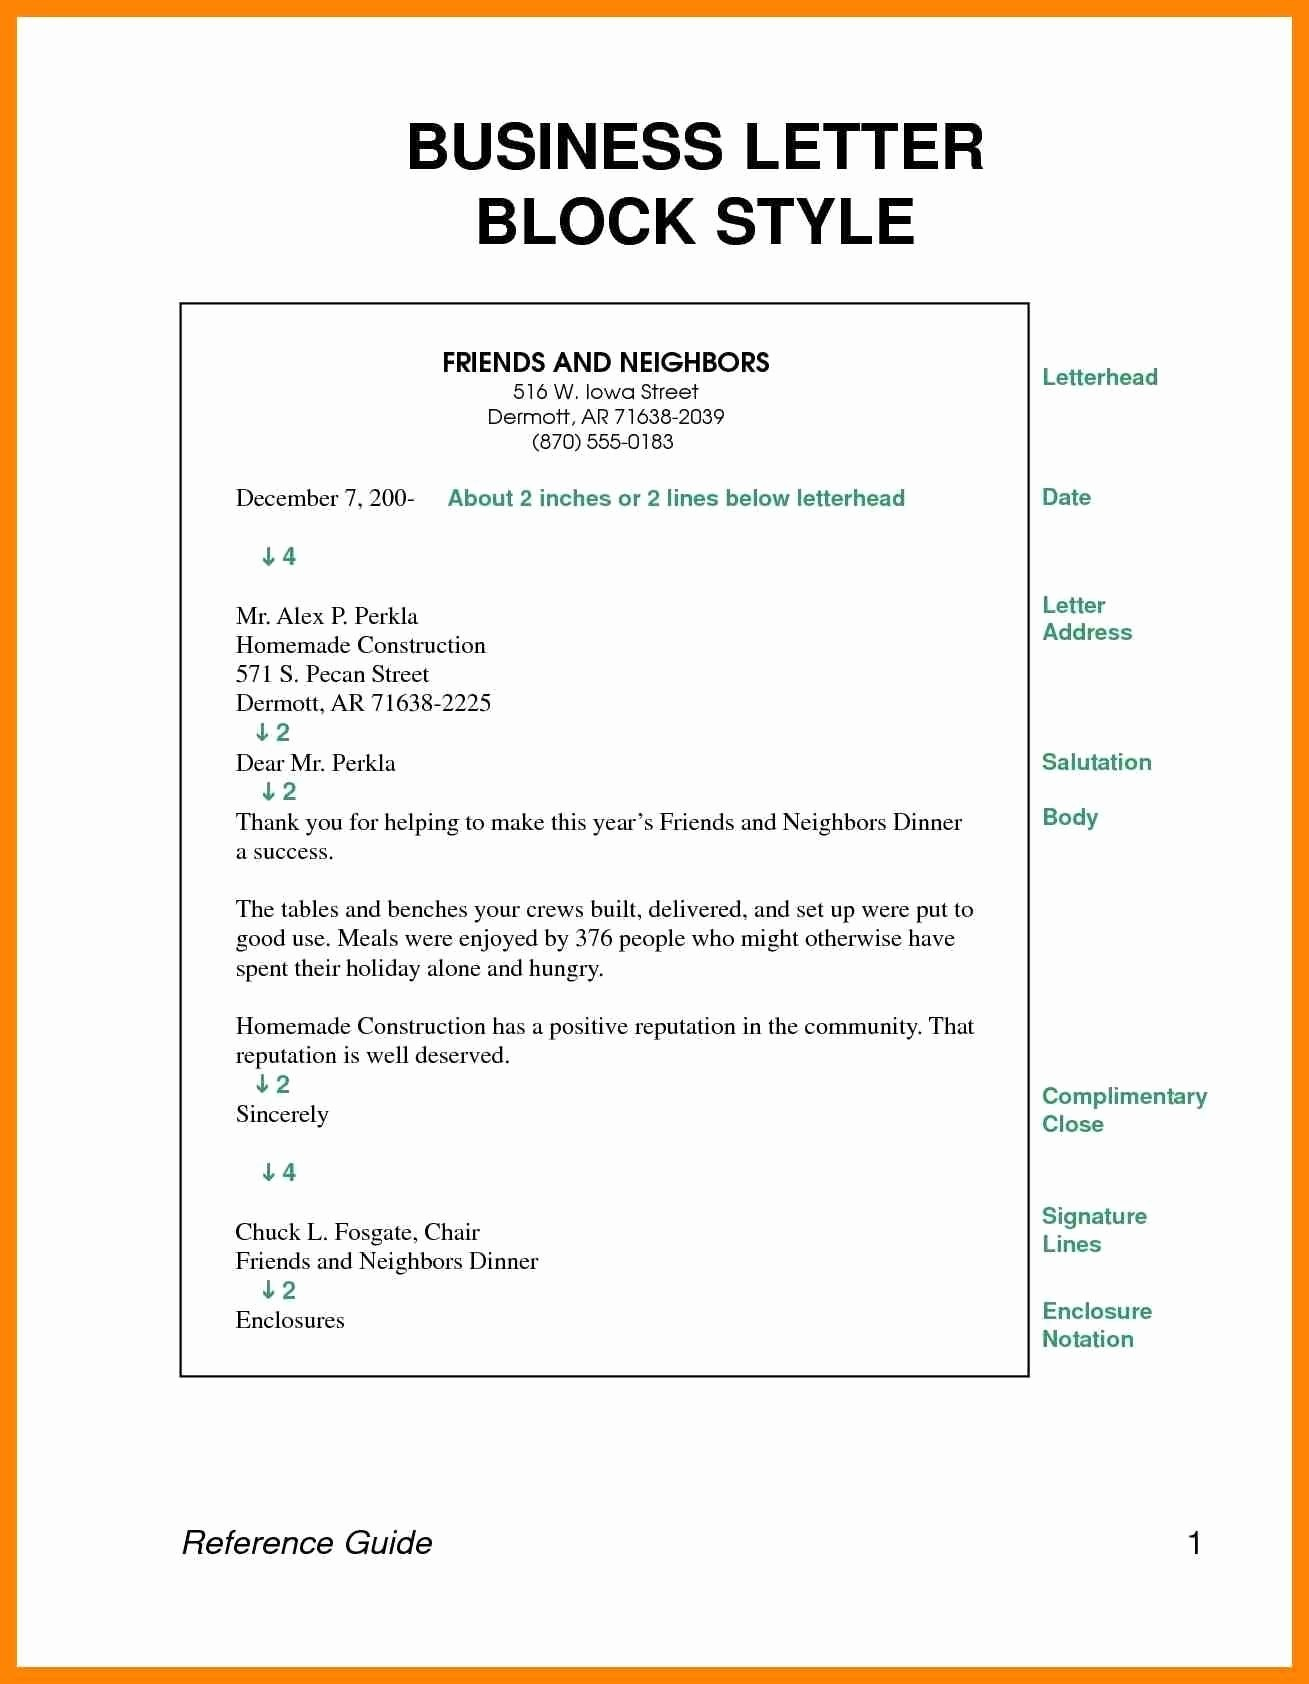 Block Style Business Letter Template - Margins for Letter format New format Business Letter Spacing